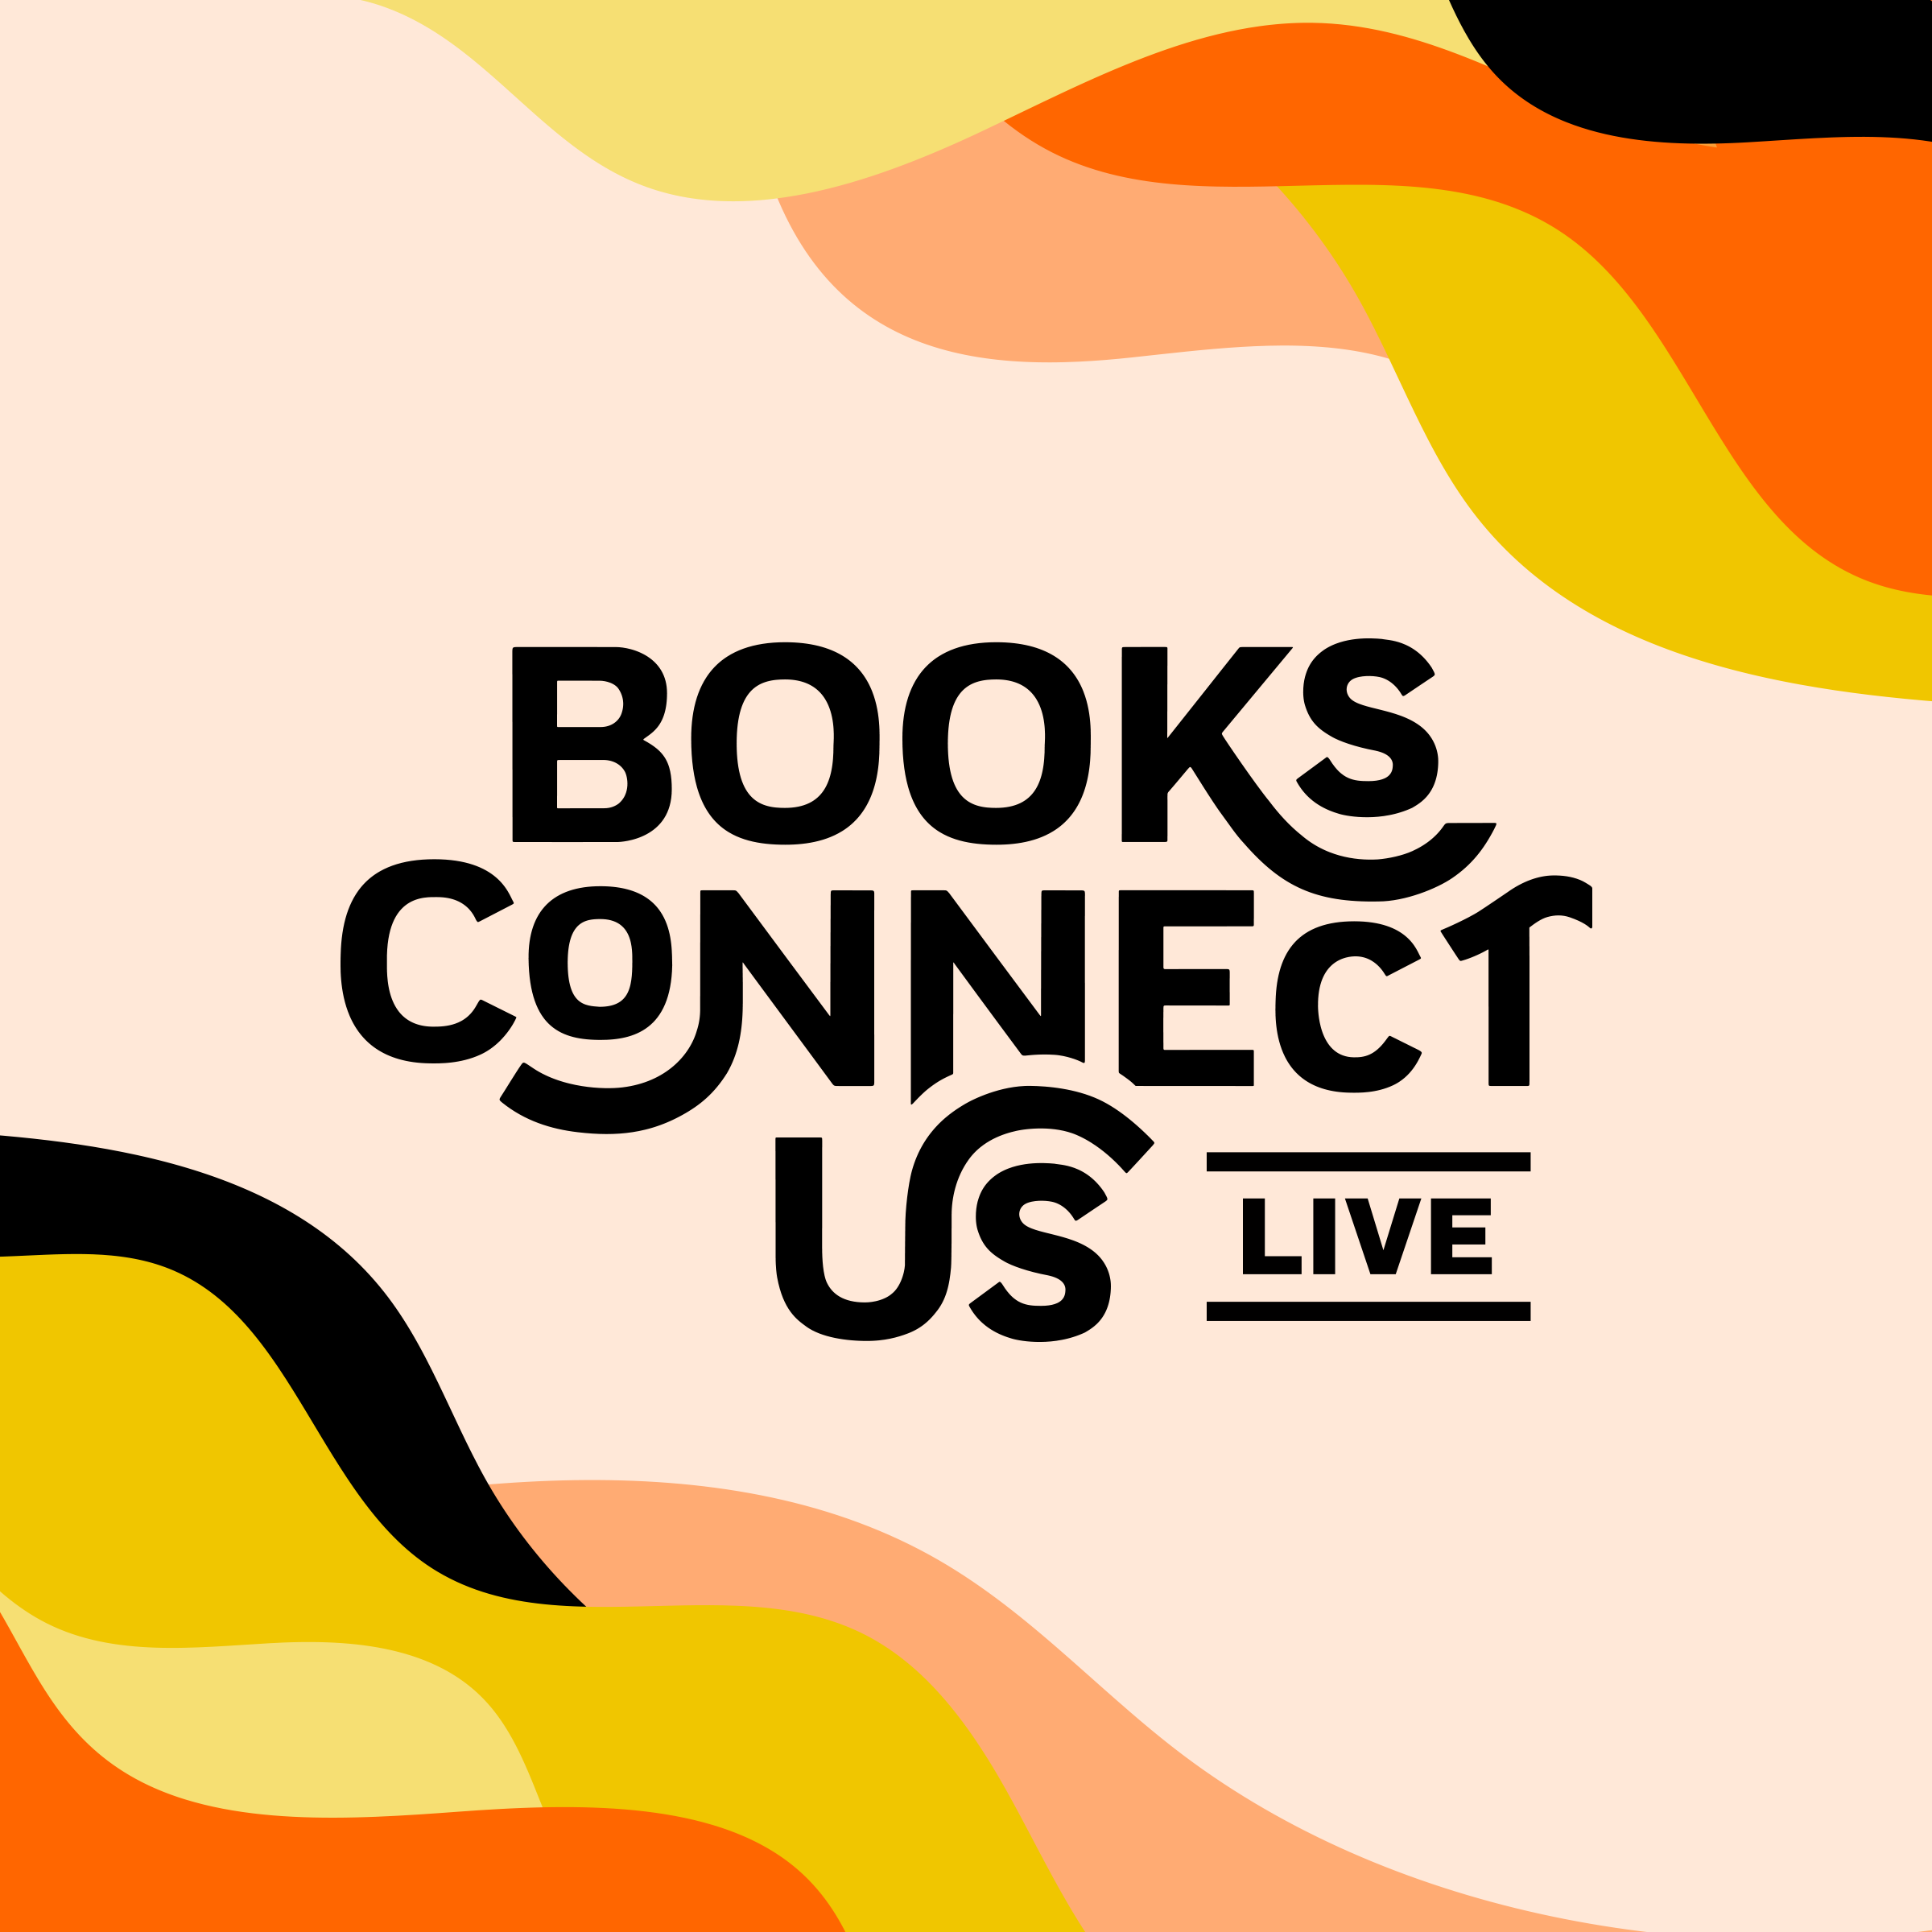 Books Connect Us Live 7/27-8/9